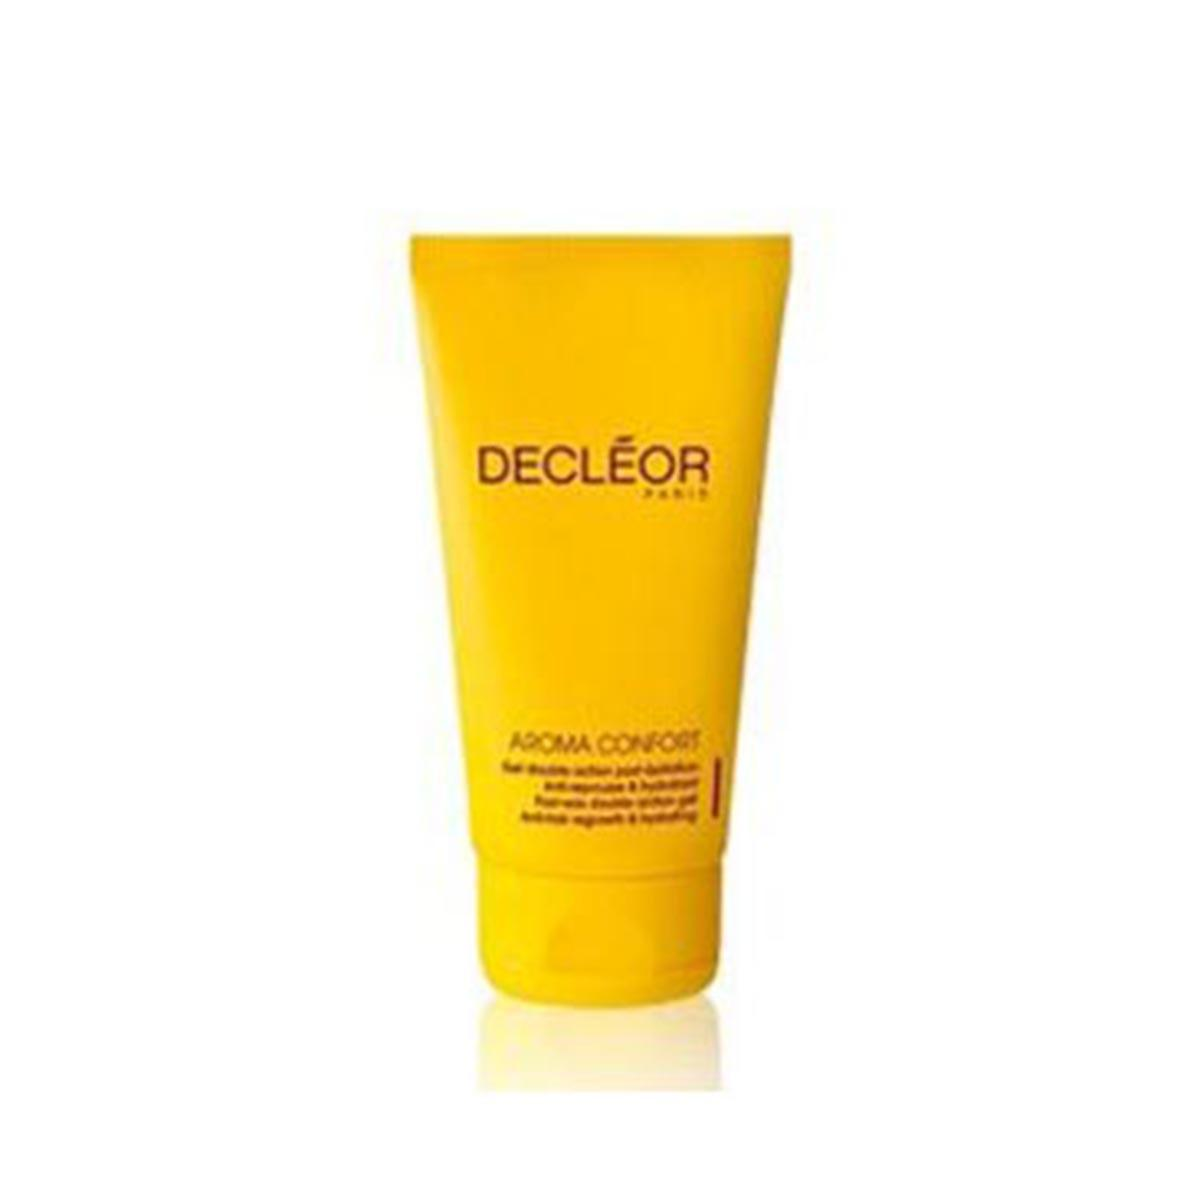 Decleor fragrances Aroma Confort Gel 125ml